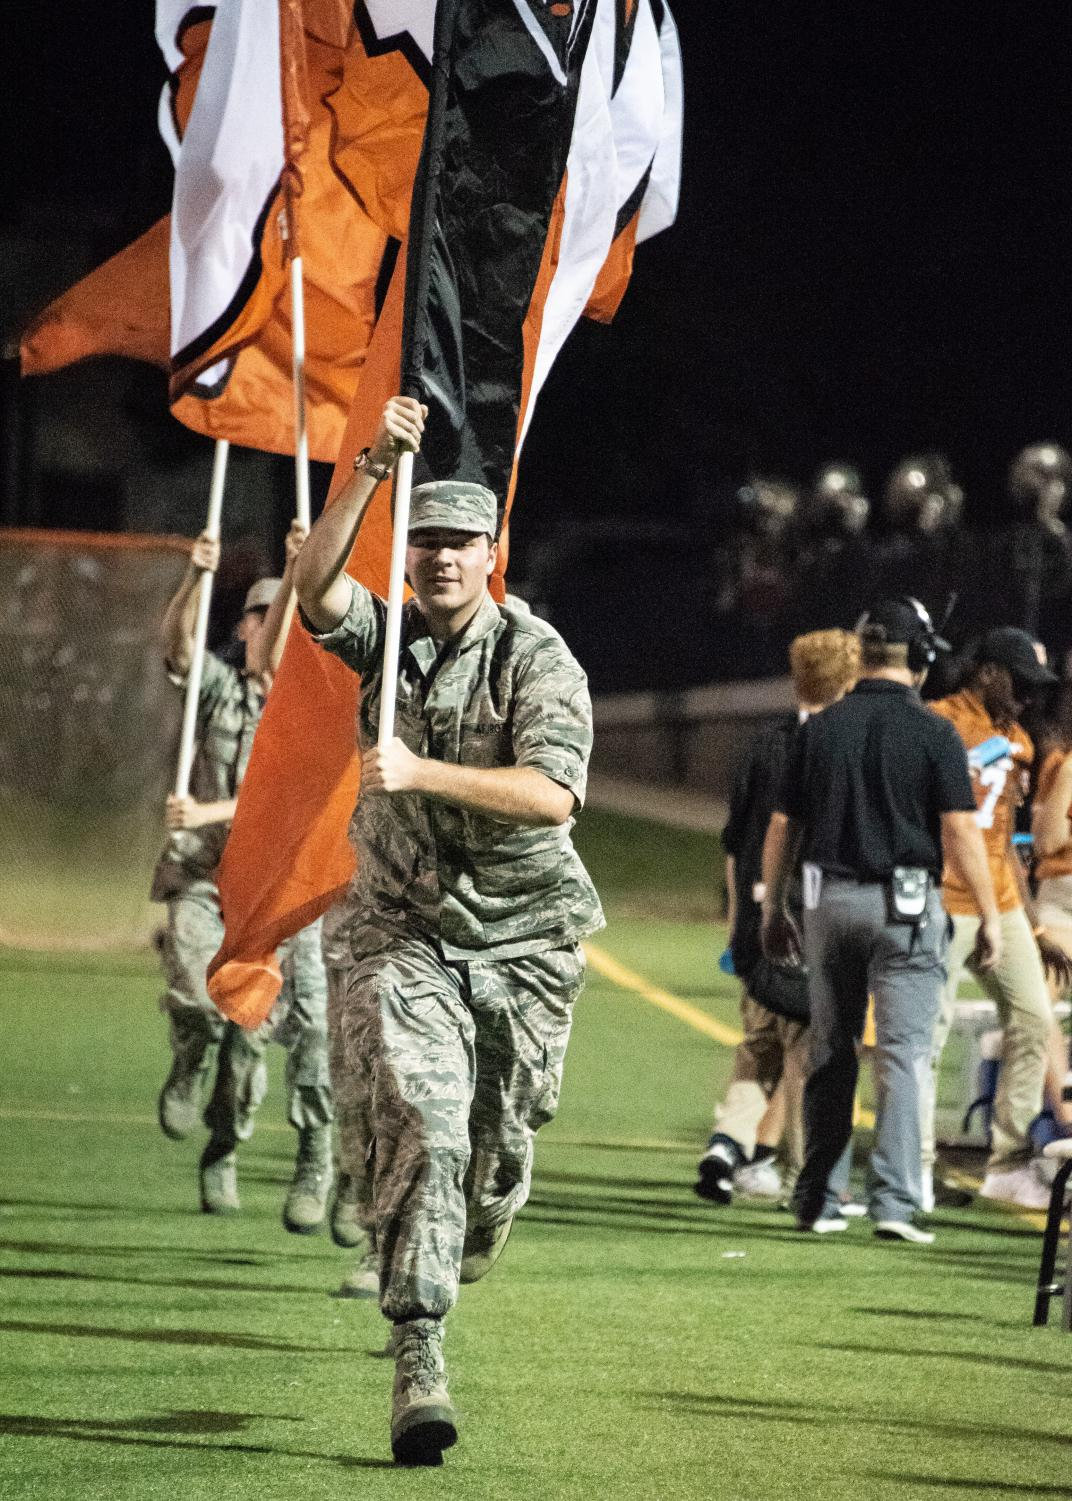 Westwood+Airforce+JROTC+runs+along+the+bleachers+holding+some+Westwood+flags+after+a+touchdown.